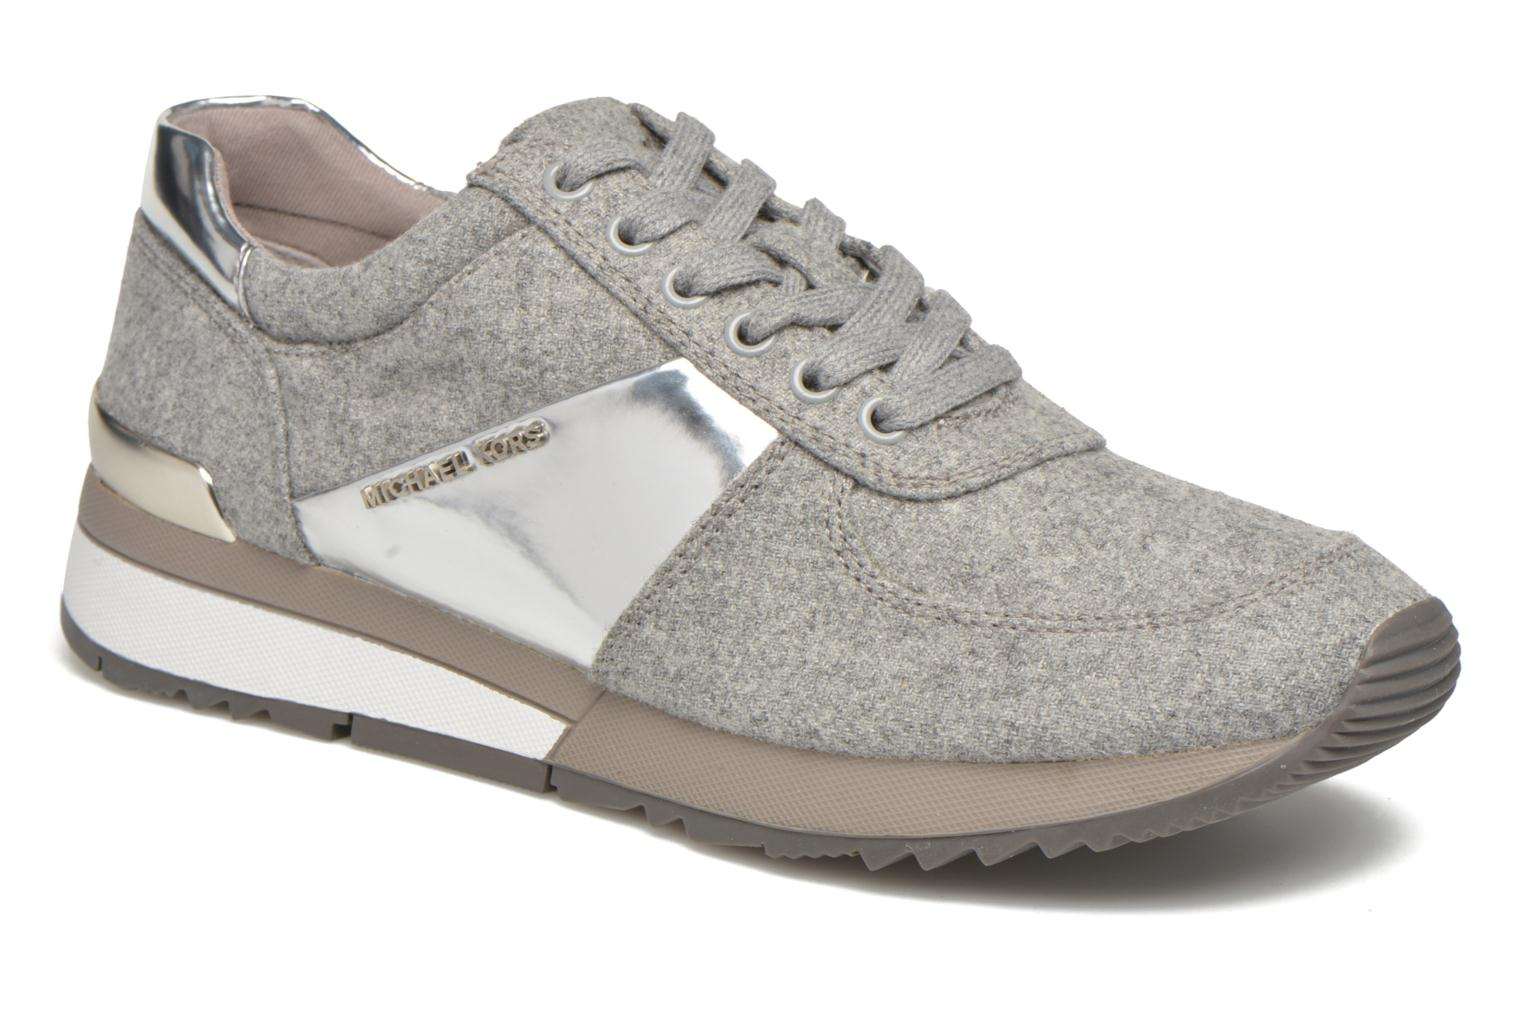 Allie trainer 916 Pgry/Silver